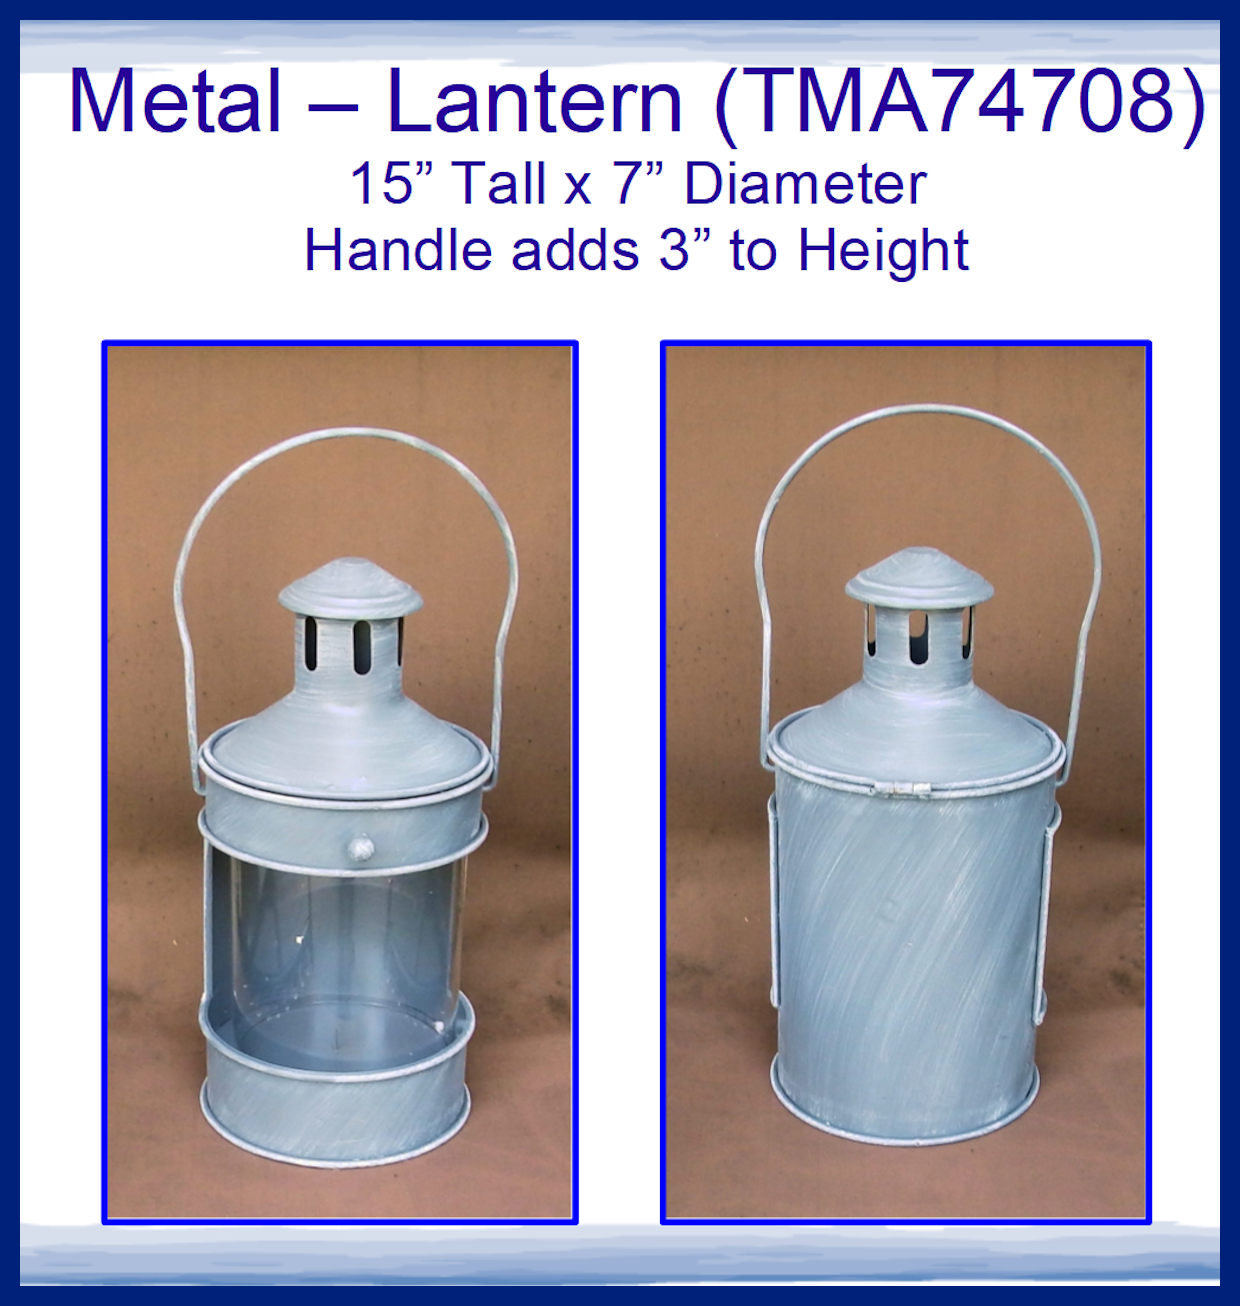 metal-latern-15-x-7-collage-tma74708.jpg